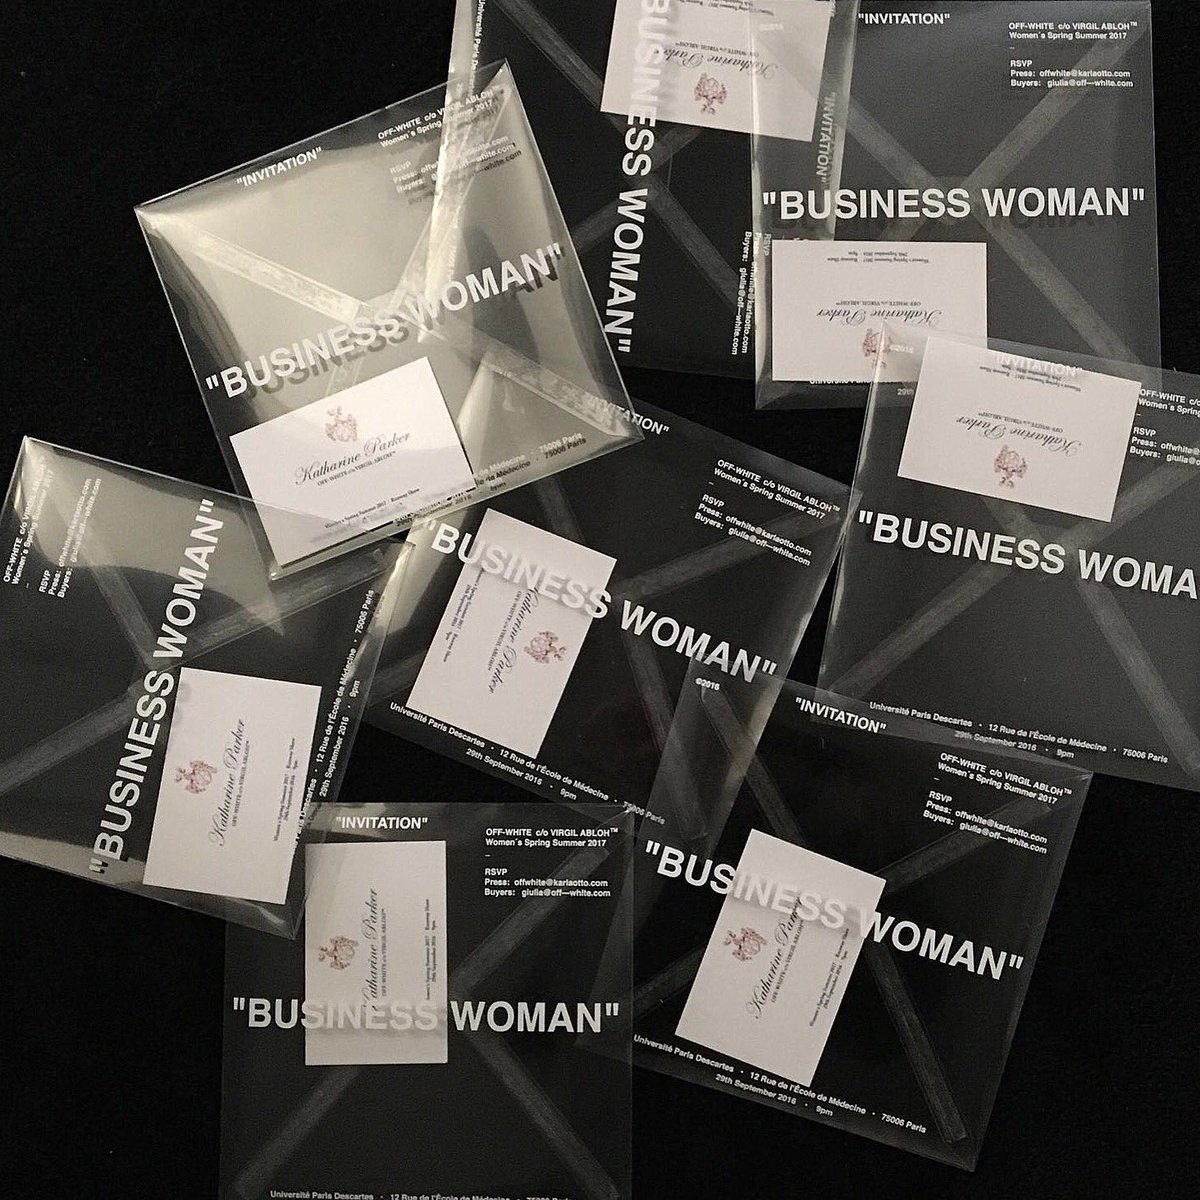 Virgil abloh on twitter katherine parker business cards the virgil abloh on twitter katherine parker business cards the invites to ss17 womens off white runway show live streaming 929 9pm paris local time colourmoves